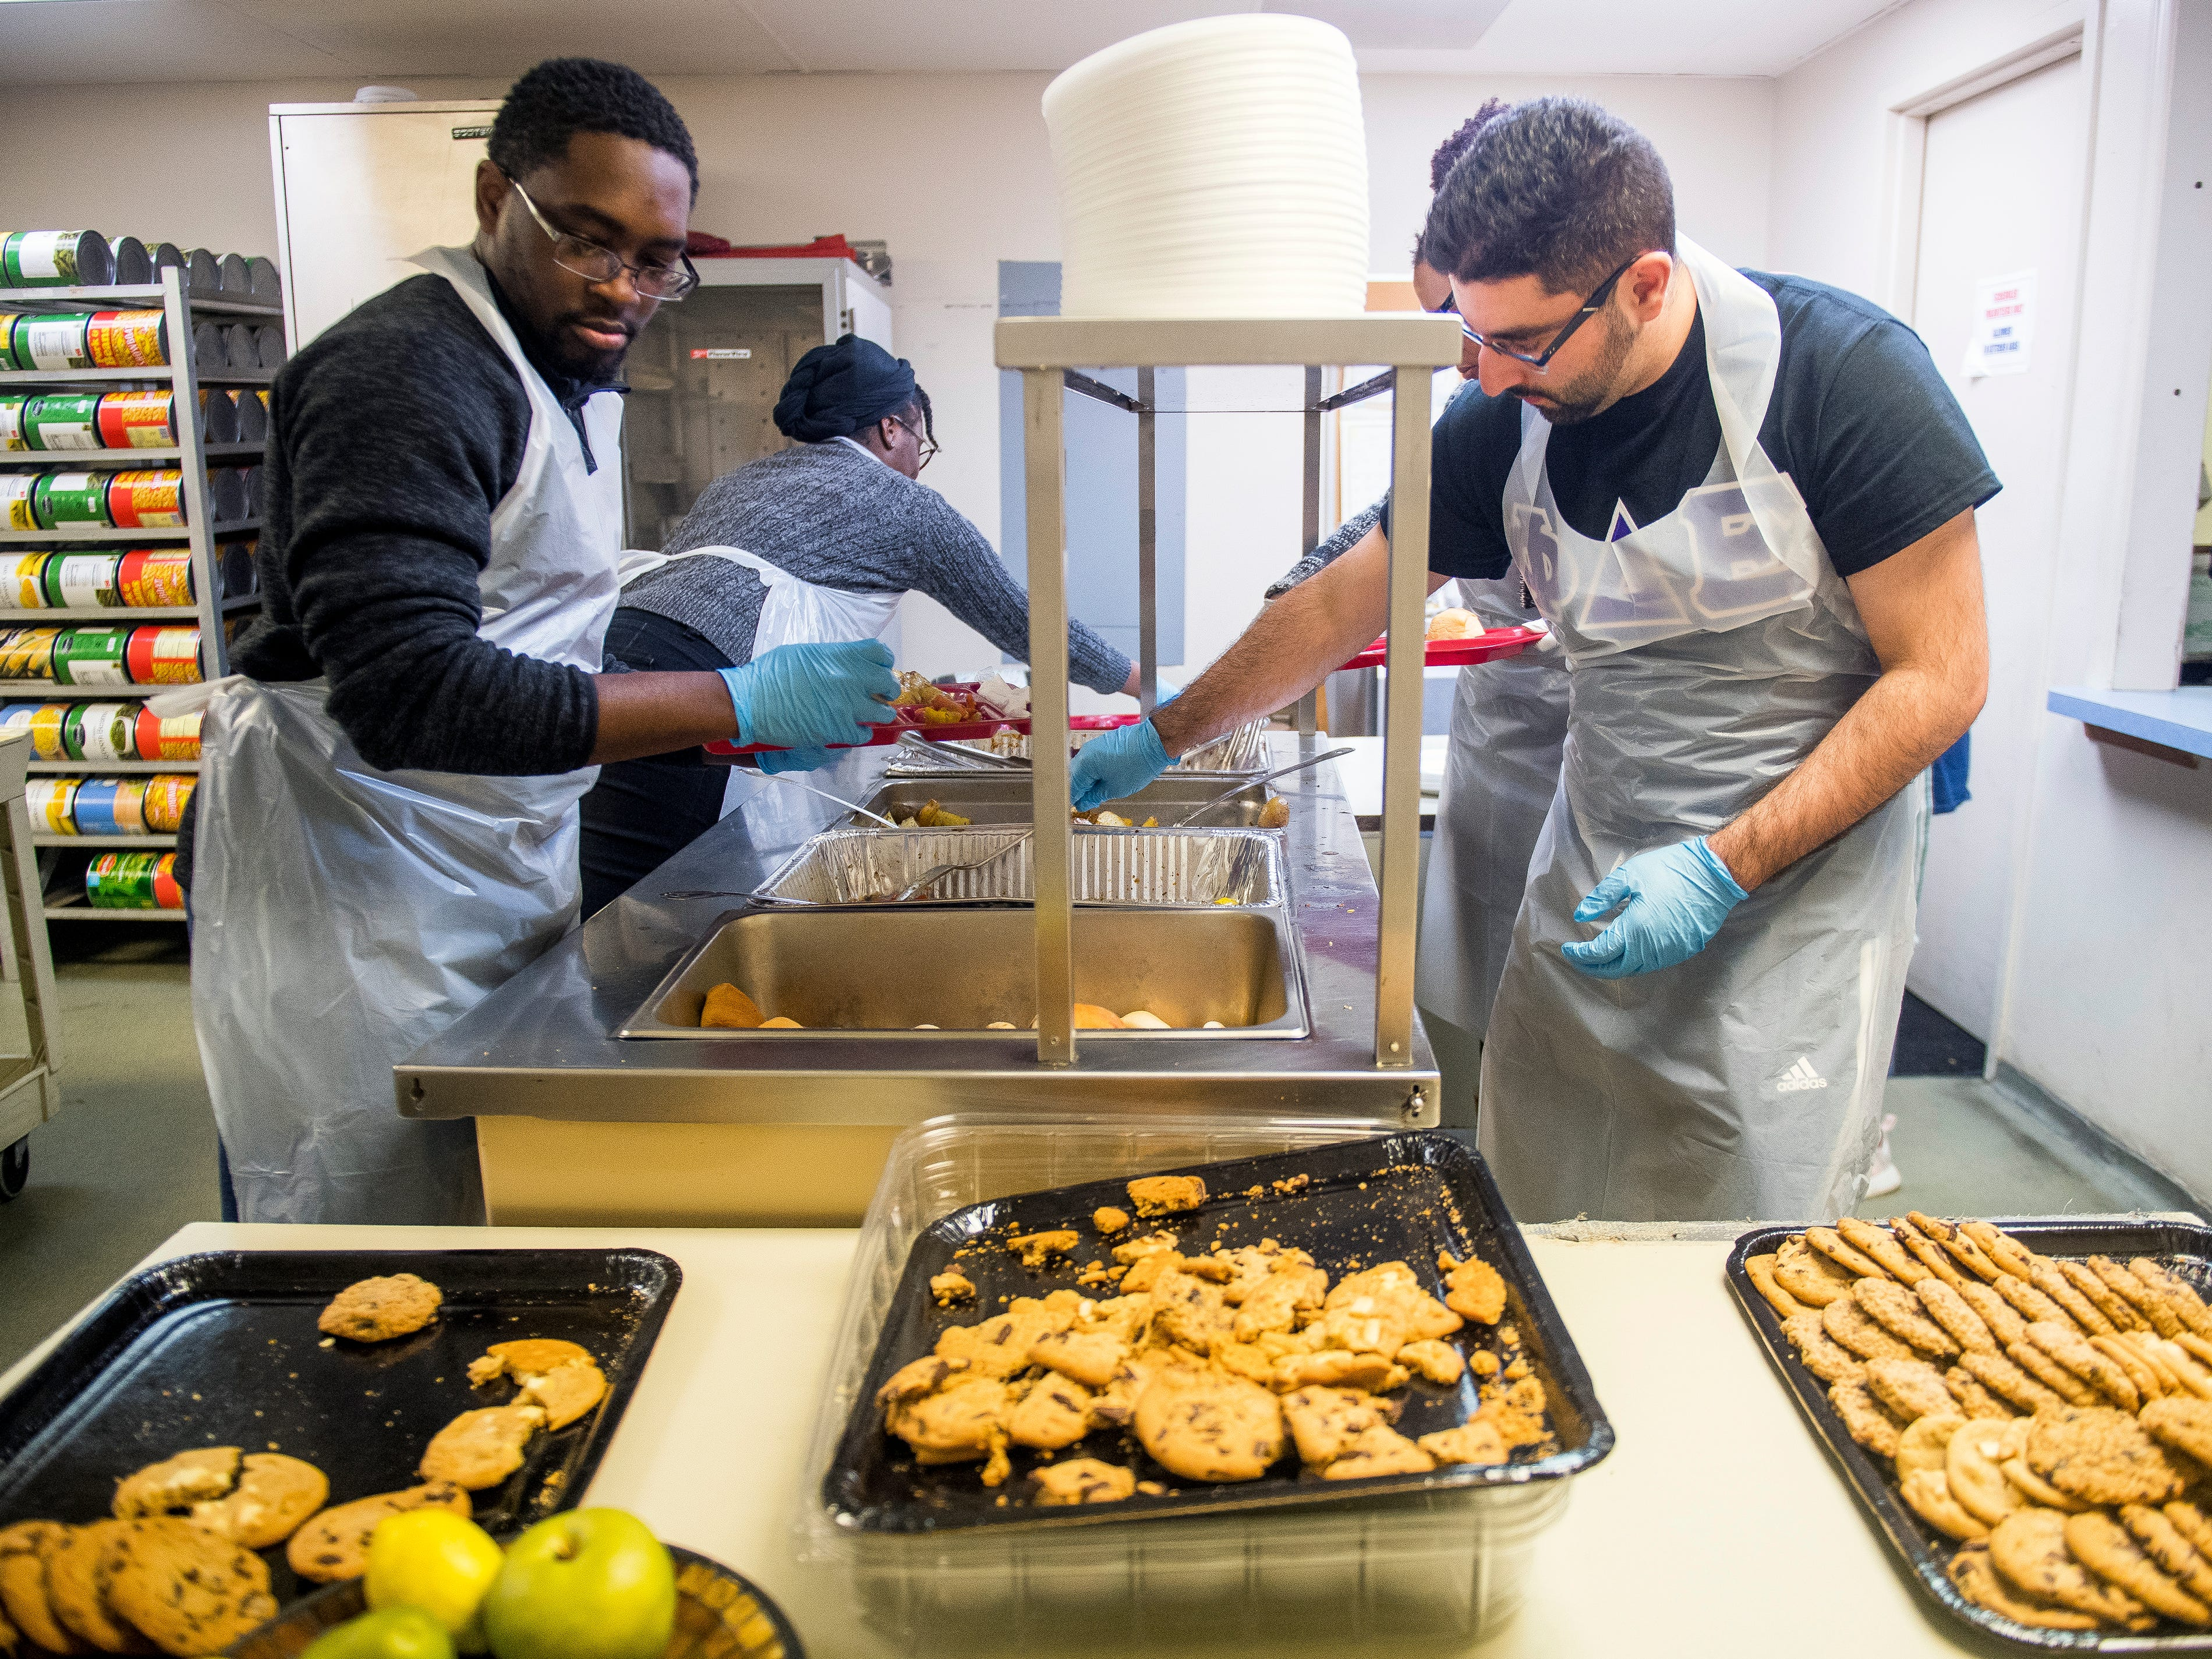 Nanakwame Darkwa, left, and Haaris Siddiq, right, Phi Delta Epsilon medical fraternity members from Ross University School of Medicine, prepare plates of food together at The Love Kitchen in Knoxville on Wednesday, November 14, 2018.